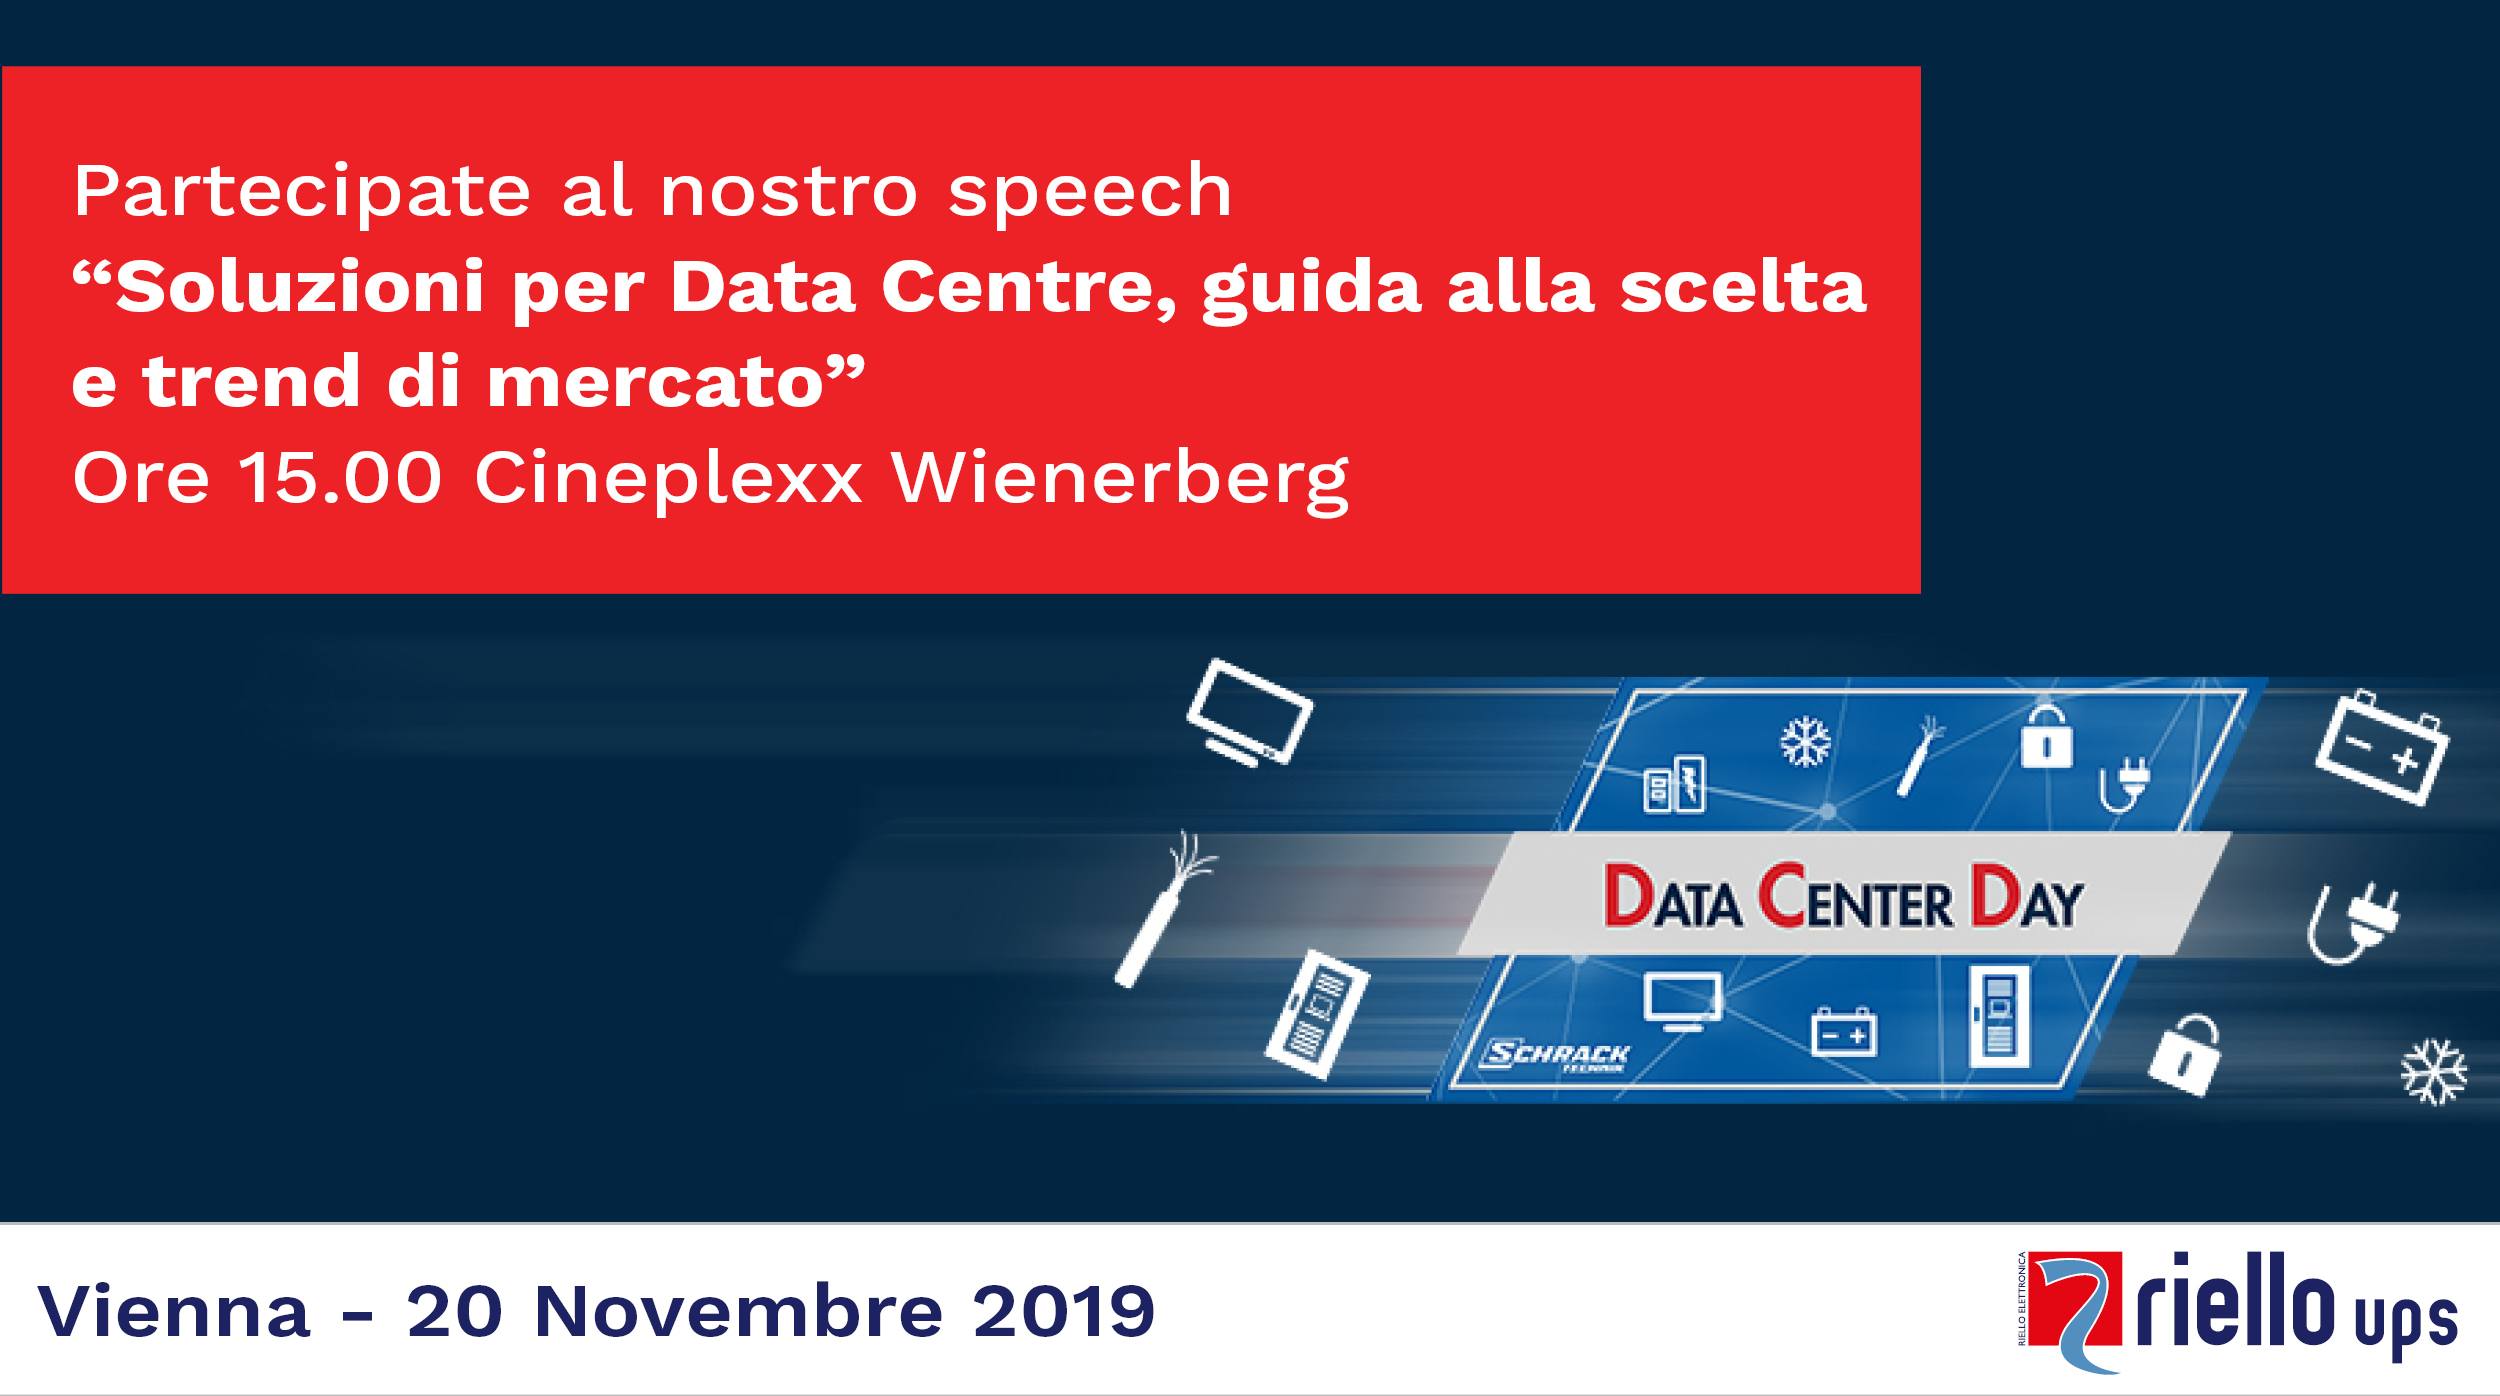 Data Center Day Vienna 20/11/2019